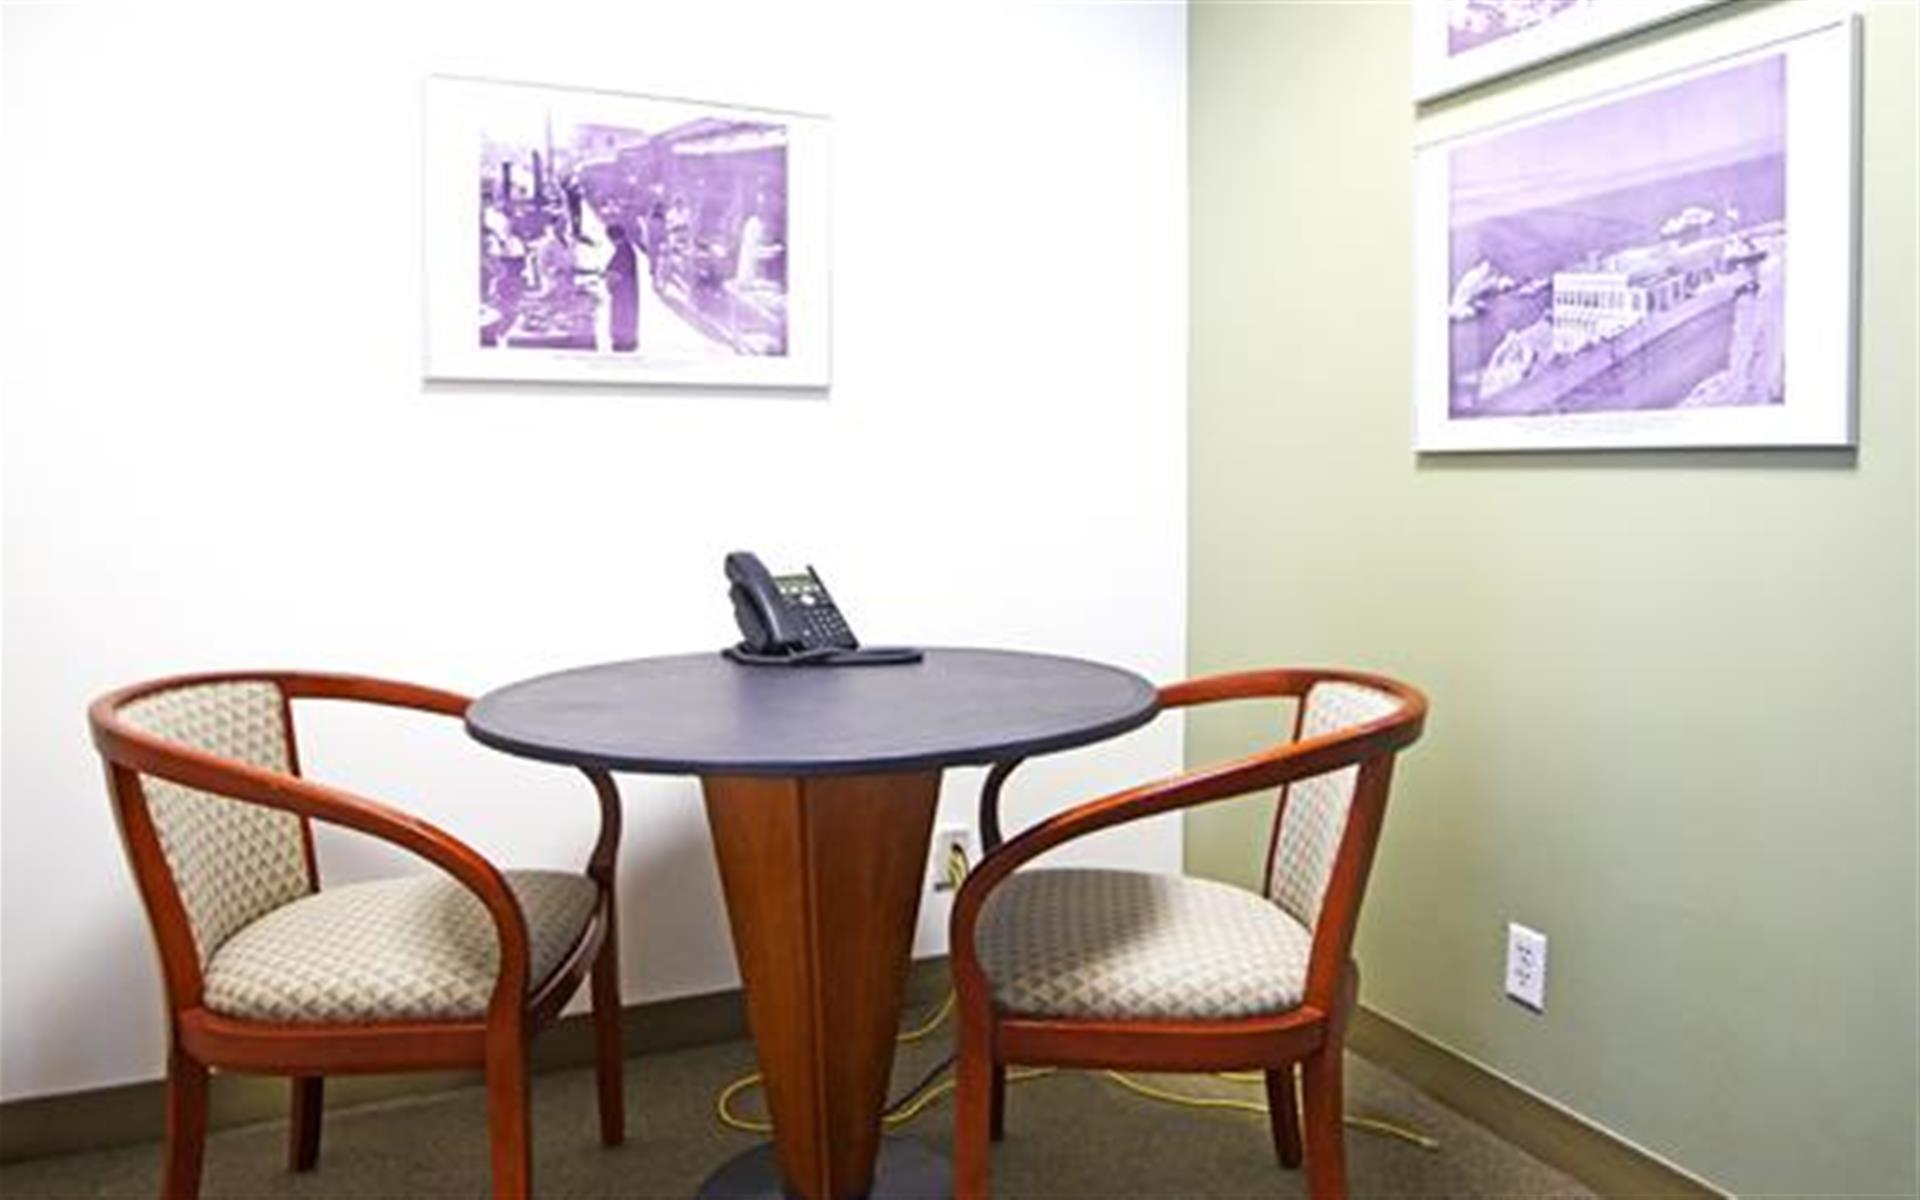 Raven Office Centers - 388 Market - Phone Booth / Meeting Room 2